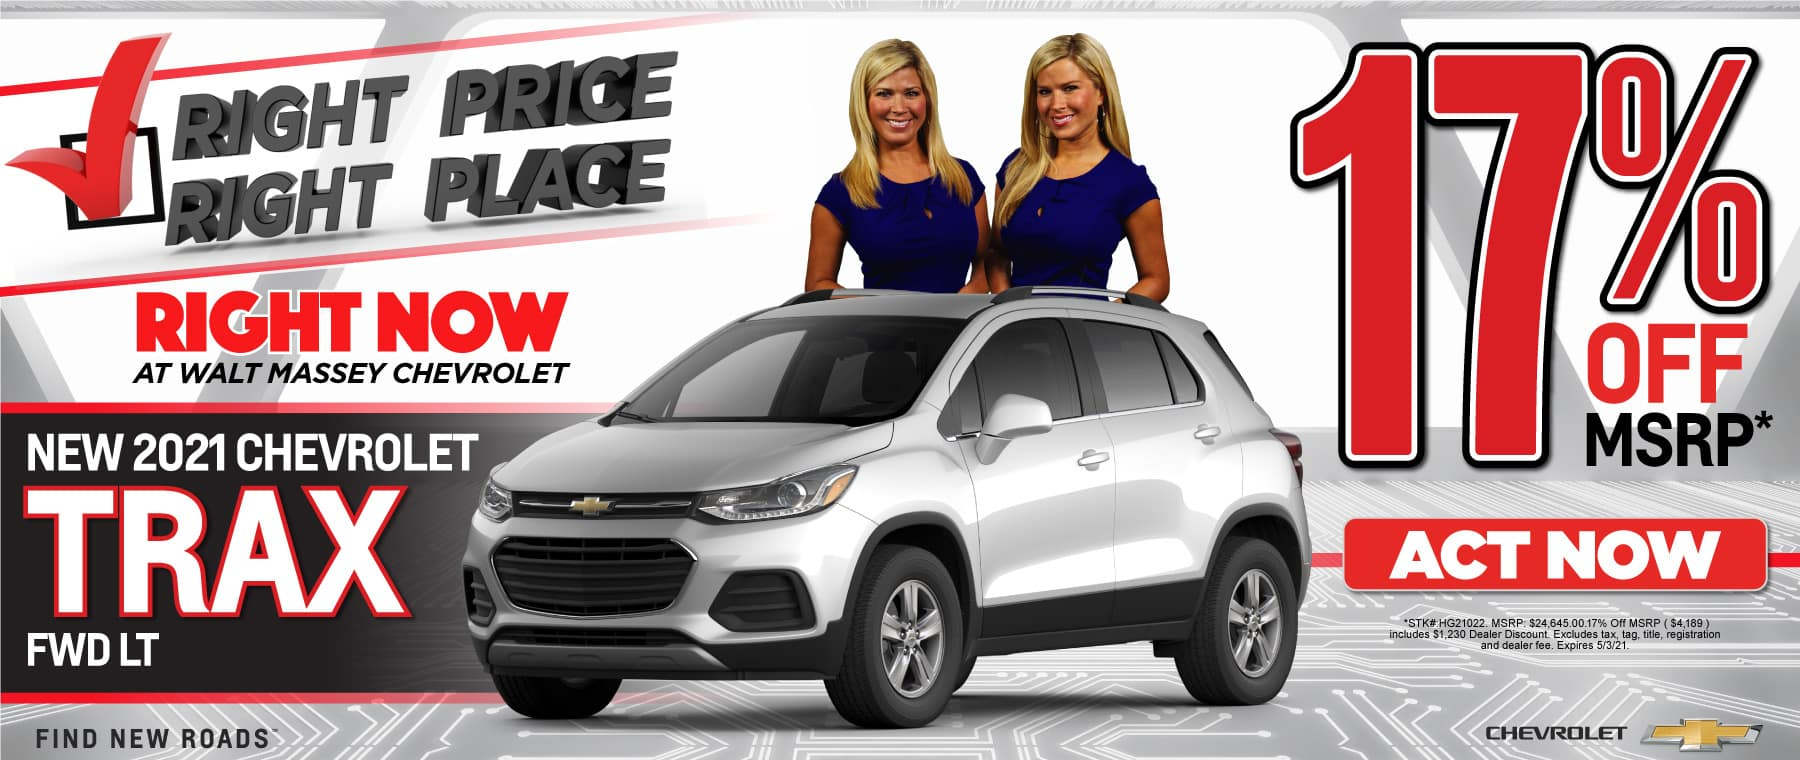 New 2021 Chevy Trax - 17% off msrp - Act Now